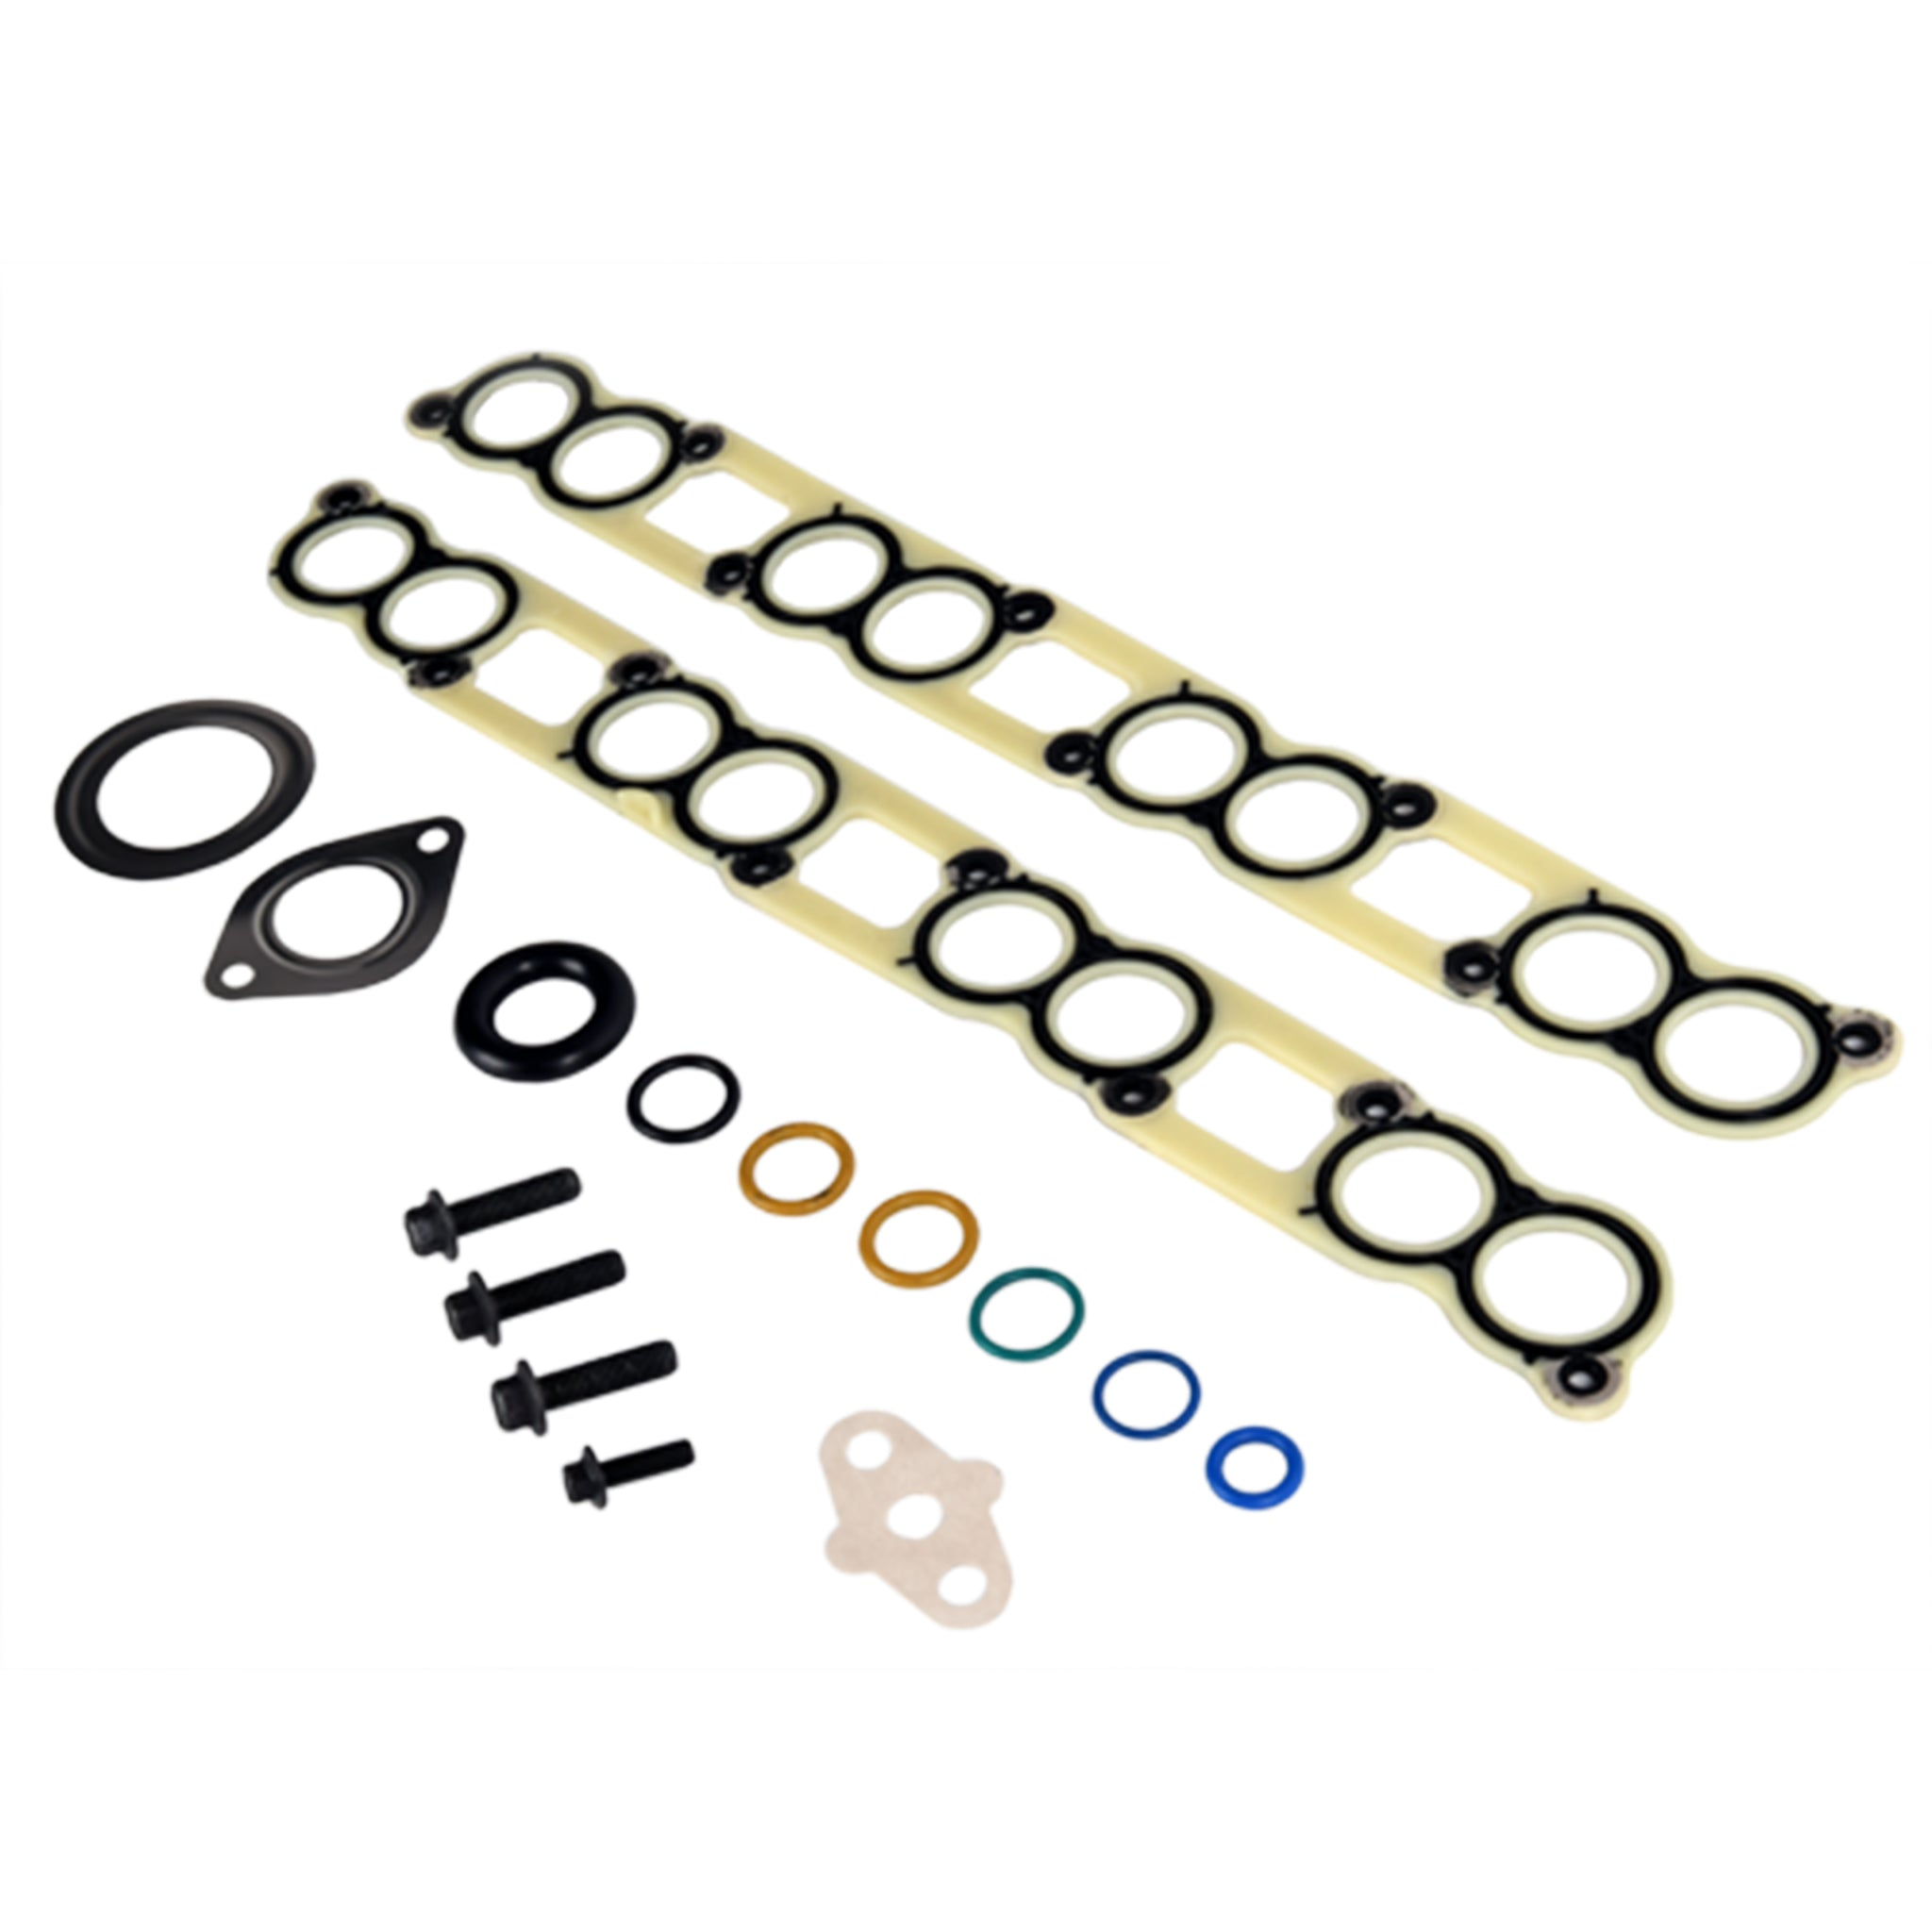 6.0 EGR Cooler Gasket Set and Turbo Hardware, No EGR Hose